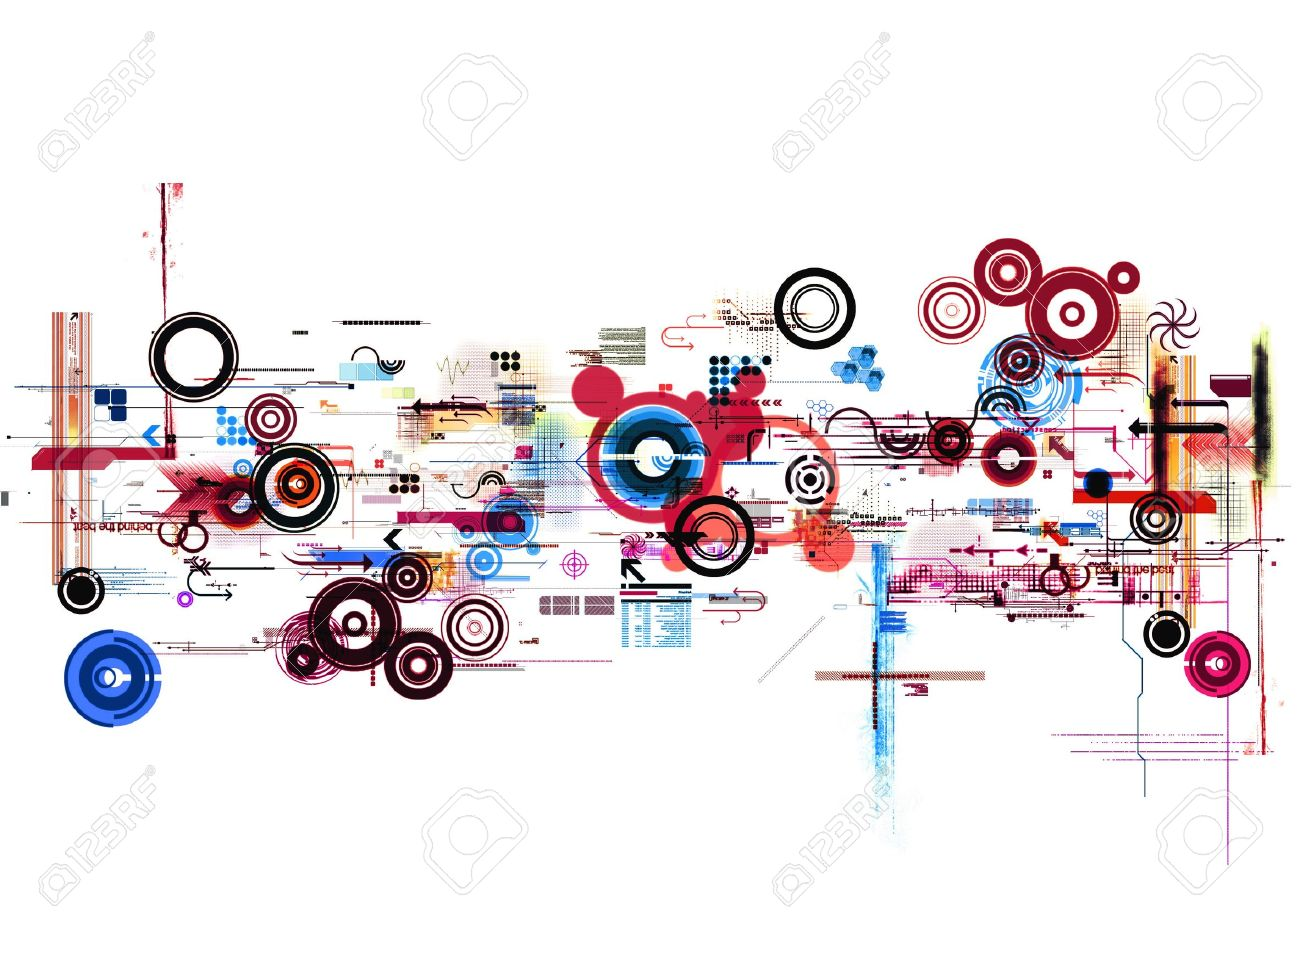 Abstract Graphic Montage Design Wallpaper Background Poster Stock Photo